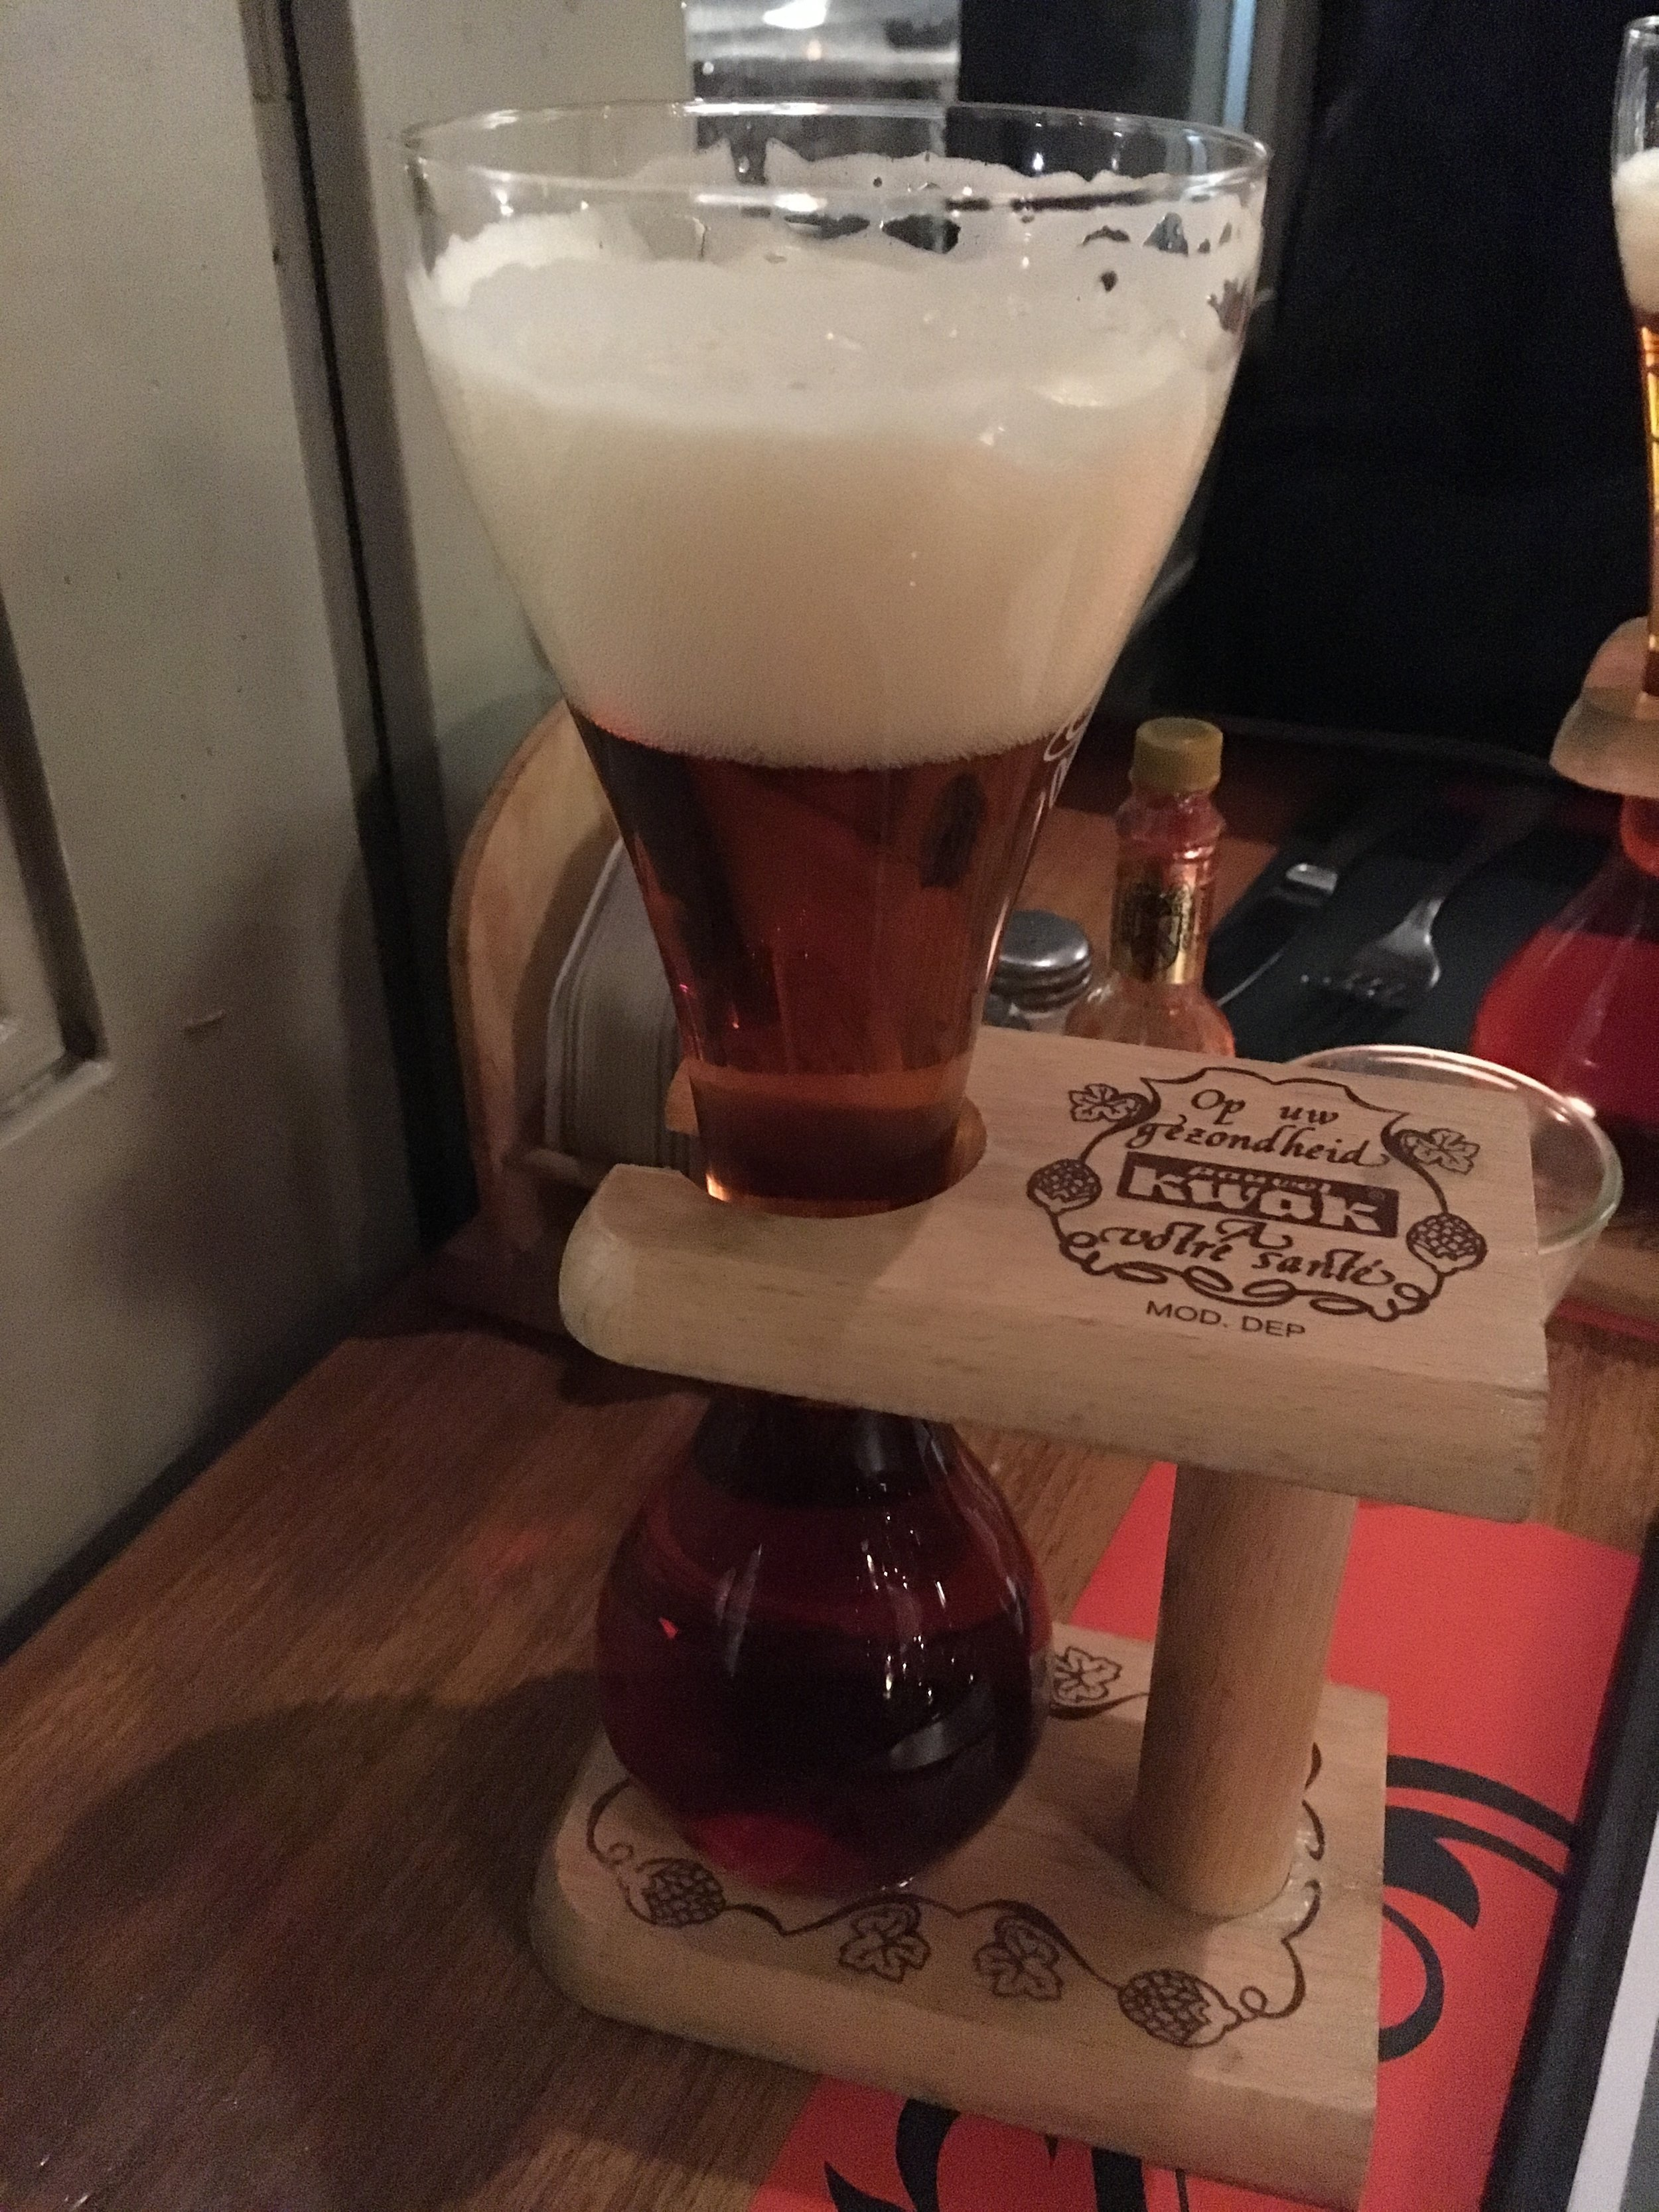 Kwak, a better beer than the novelty glass suggests. Enjoy in moderation because it's deceptively strong.